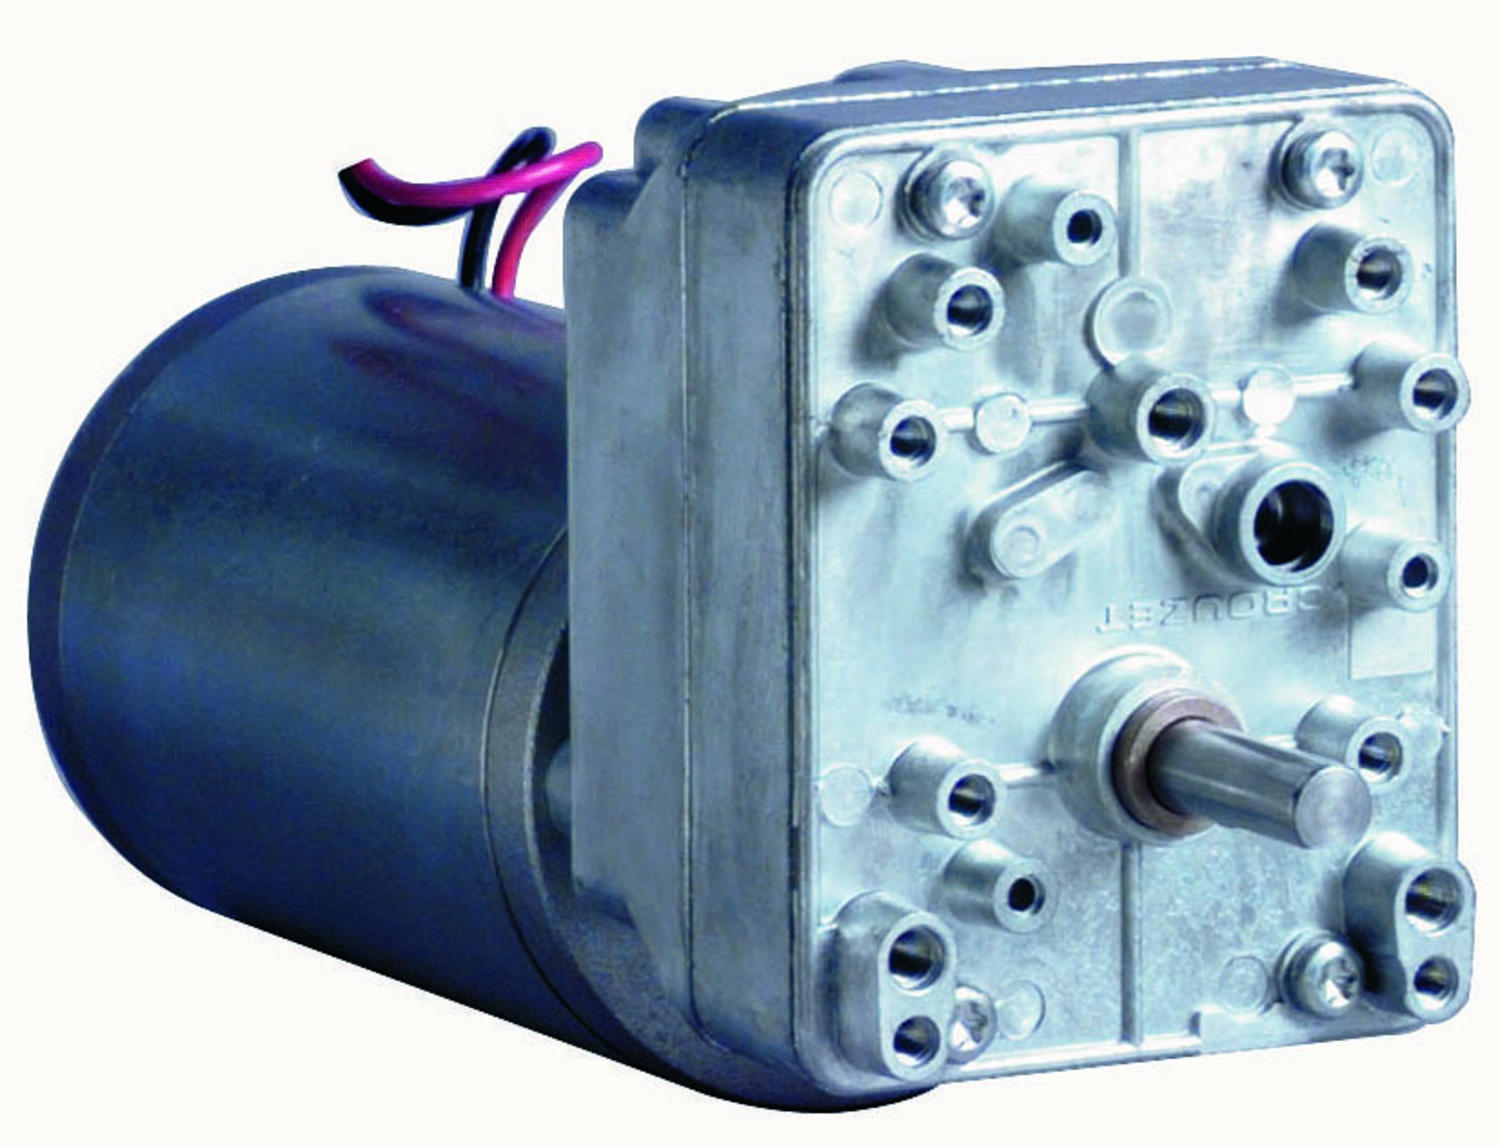 828325xx DC motor with spur gearbox - Industrial DC Series